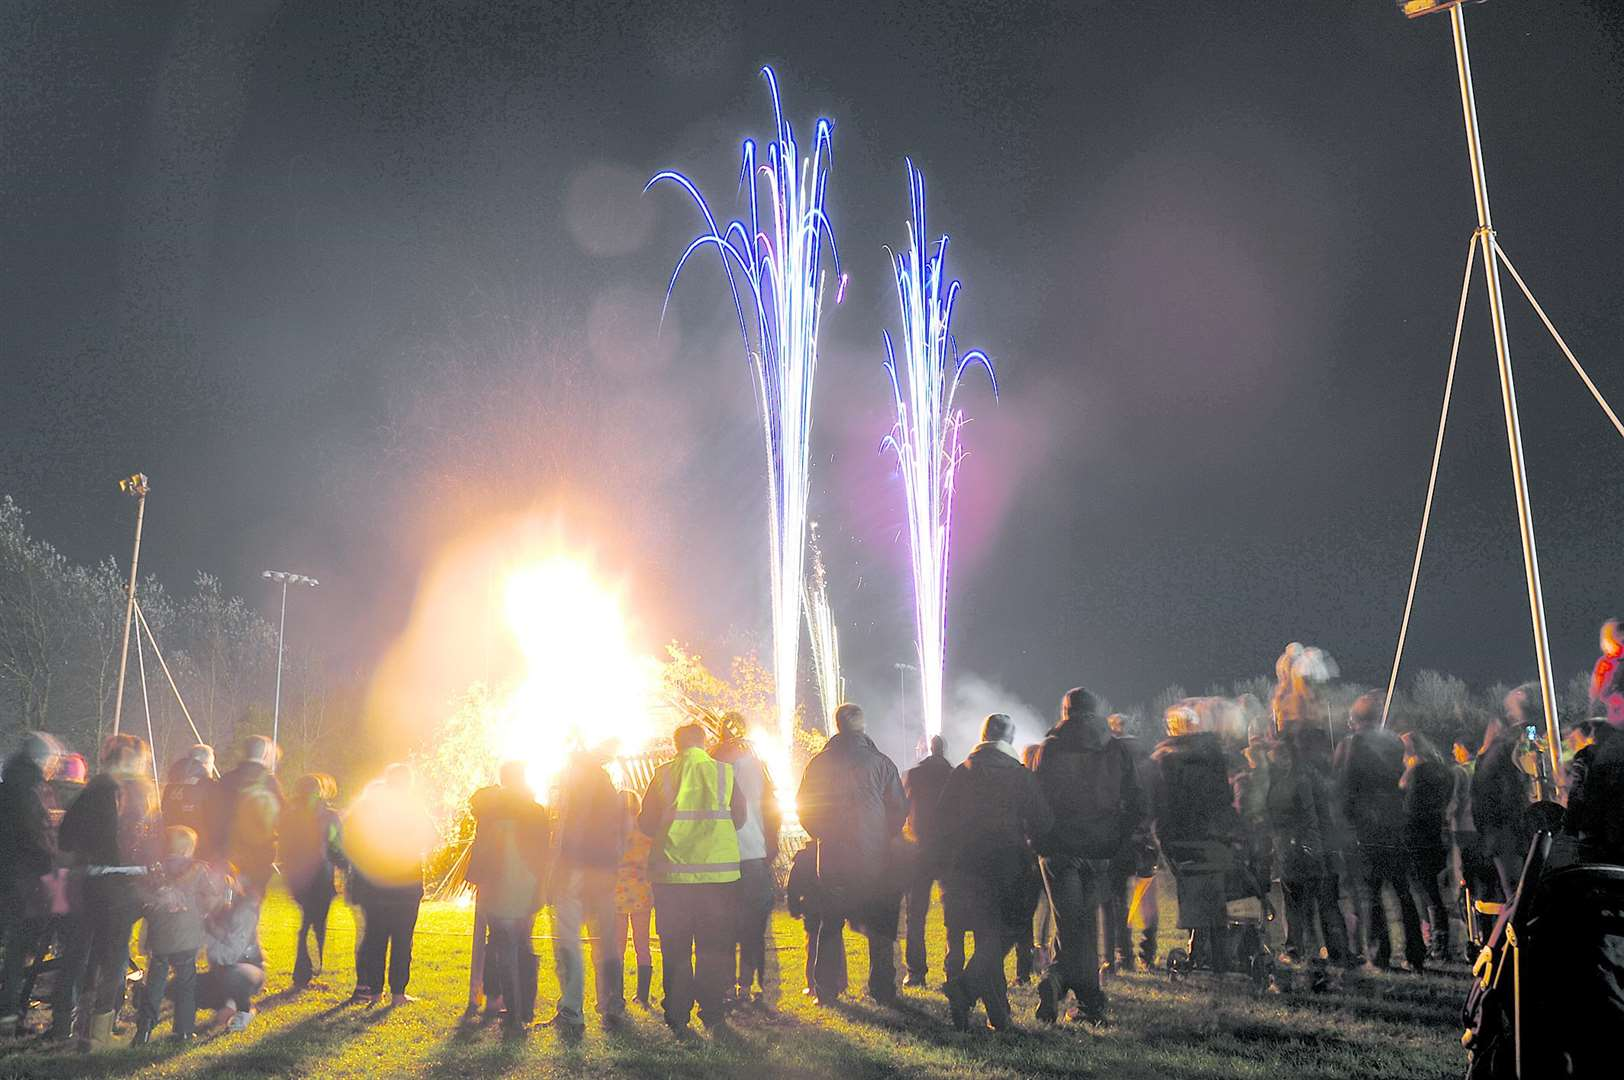 Firework display and bonfire at Newark Rugby Club.